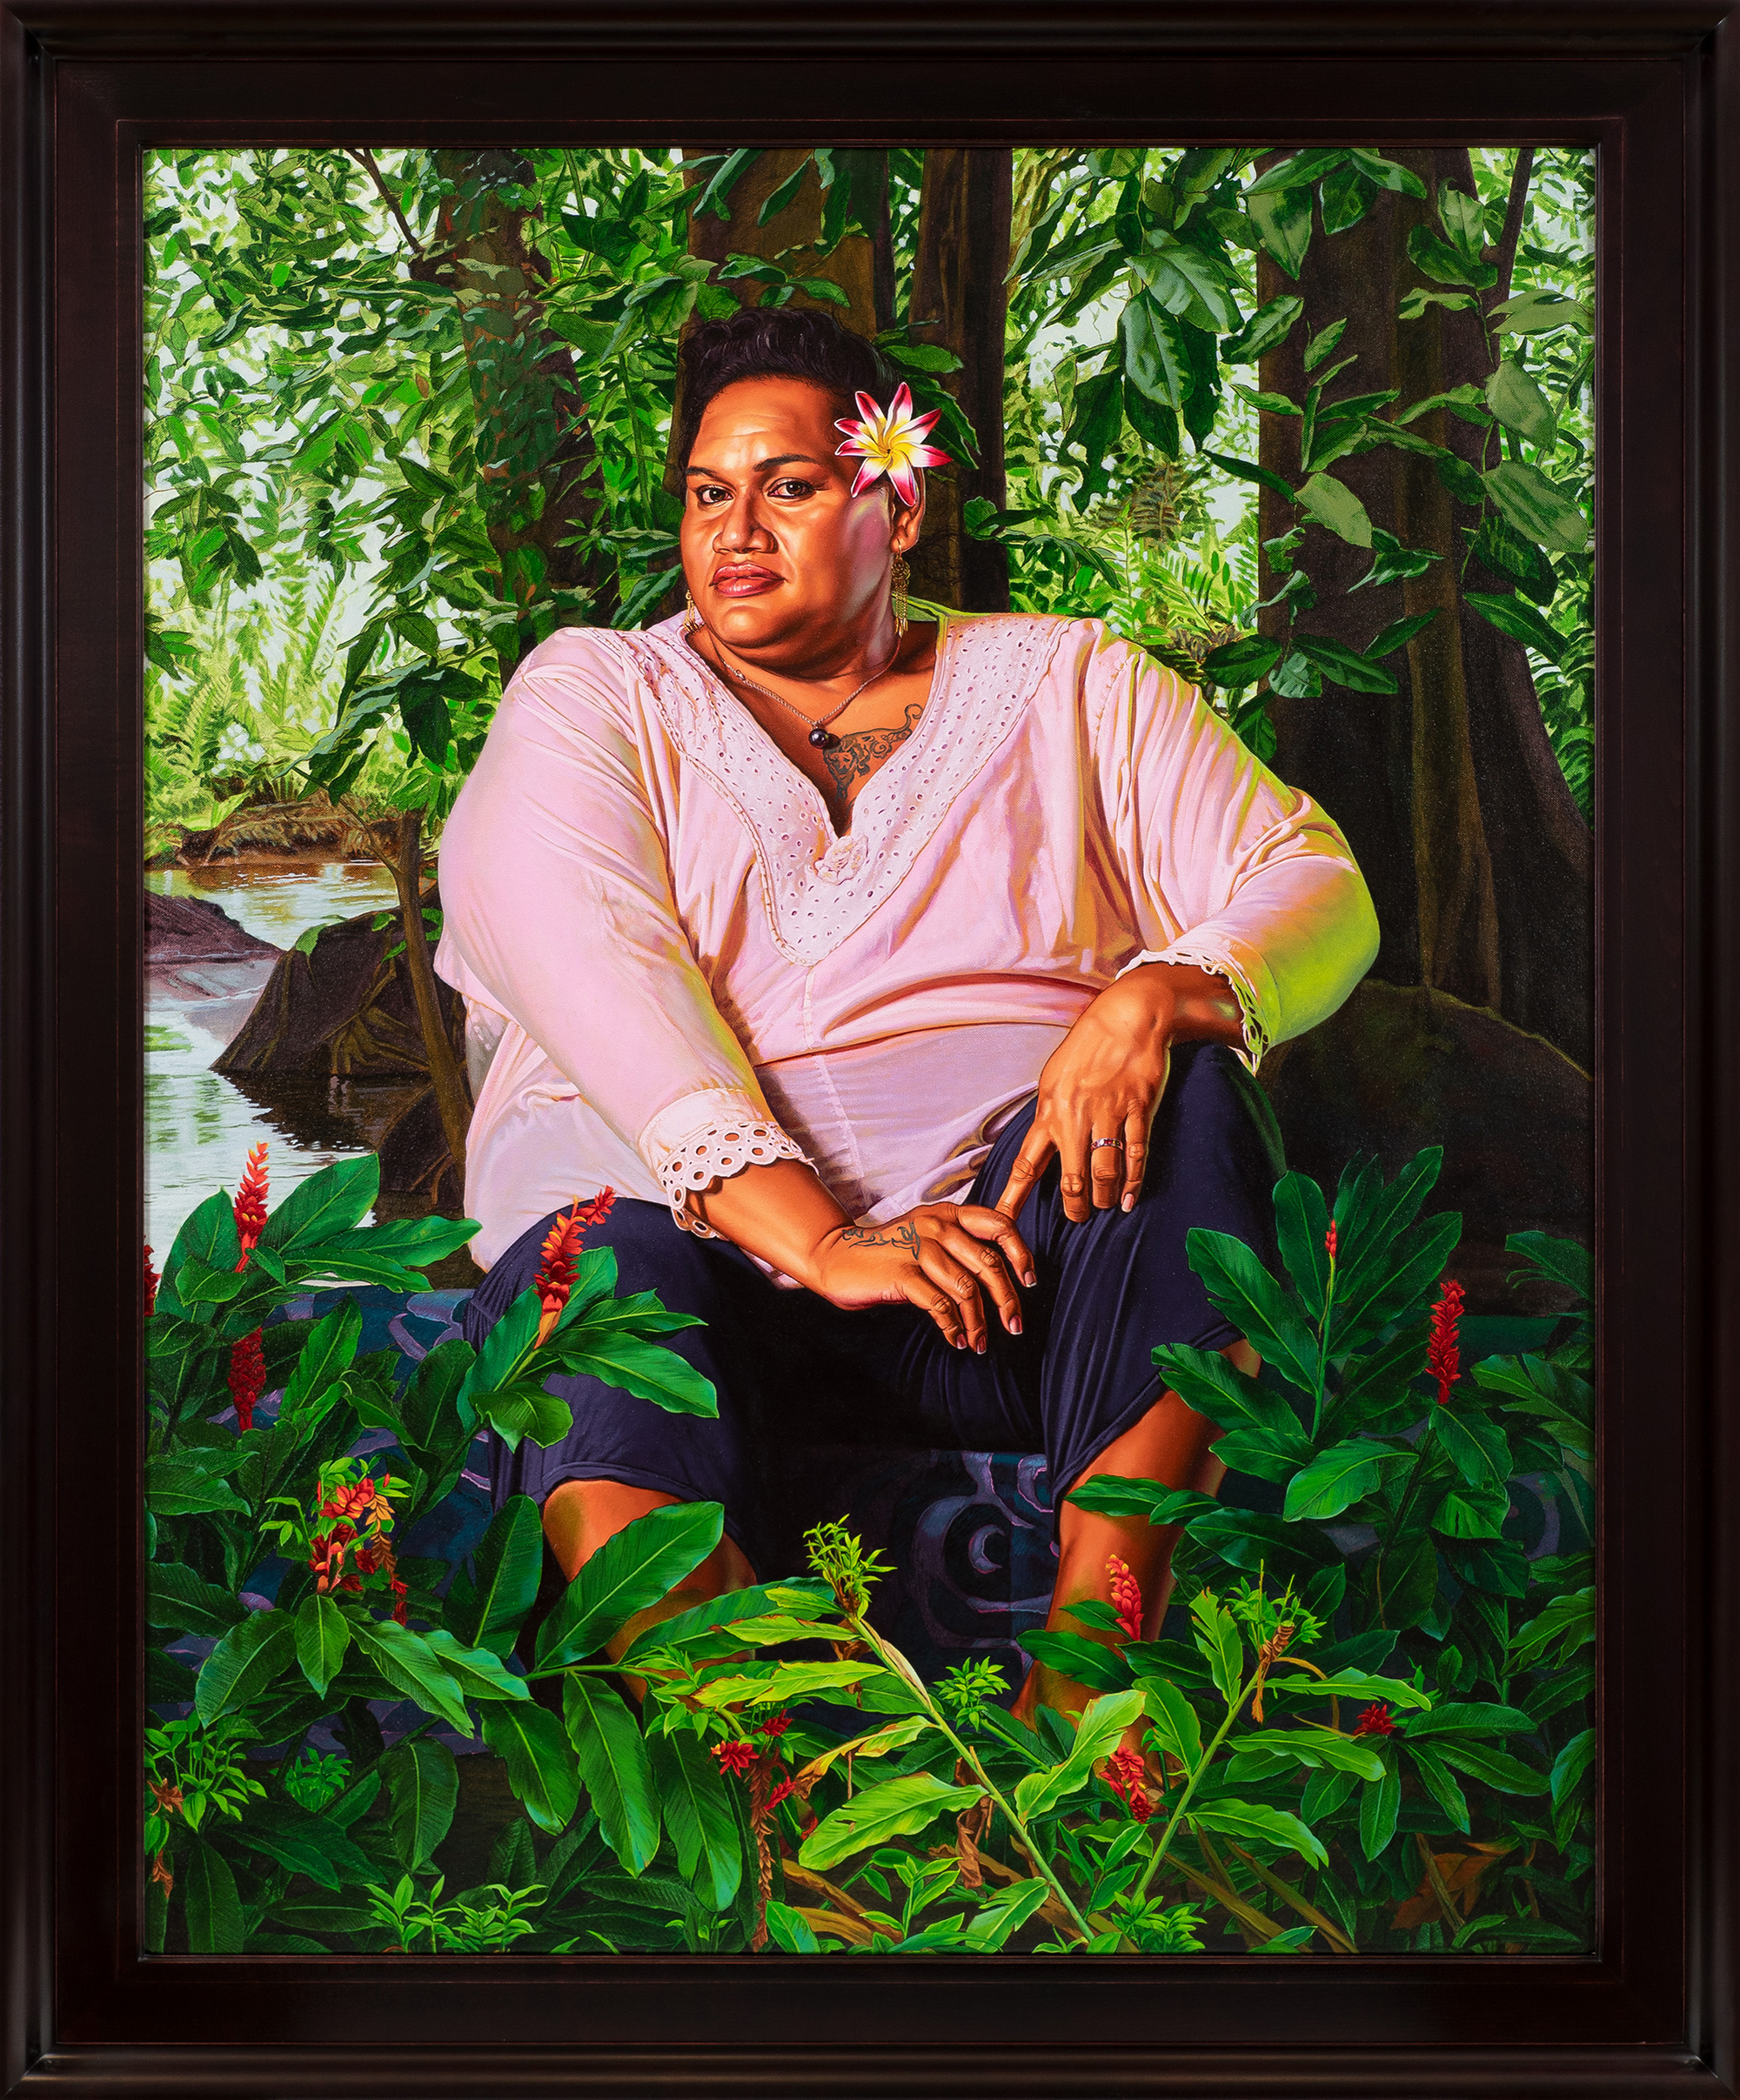 Detailed Portraits of Tahiti's Third Gender by Kehinde Wiley Challenge Gaugin's Problematic Depictions | Colossal